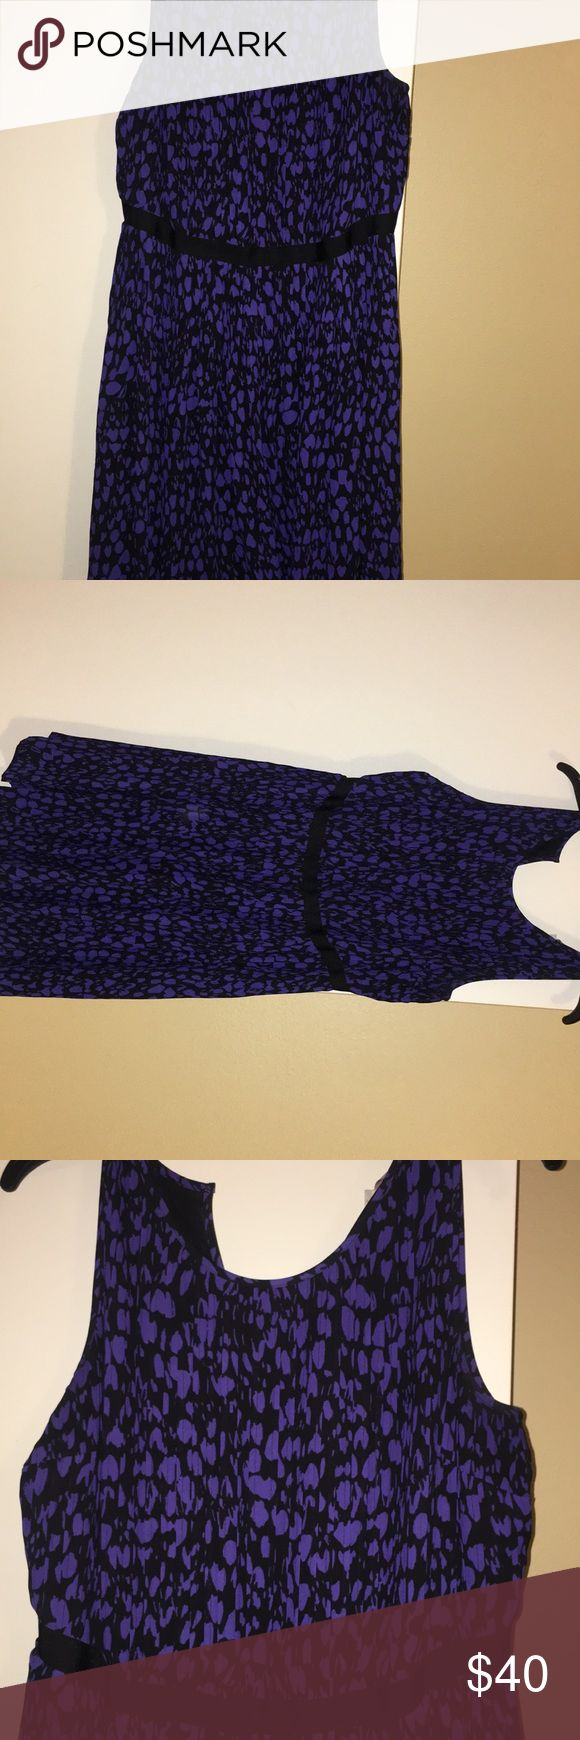 Purple/Black Loft Dress Super cute empire waist dress! Only worn a couple of times, in such great condition.  Perfect to wear in the office then switch over to date night! LOFT Dresses Midi